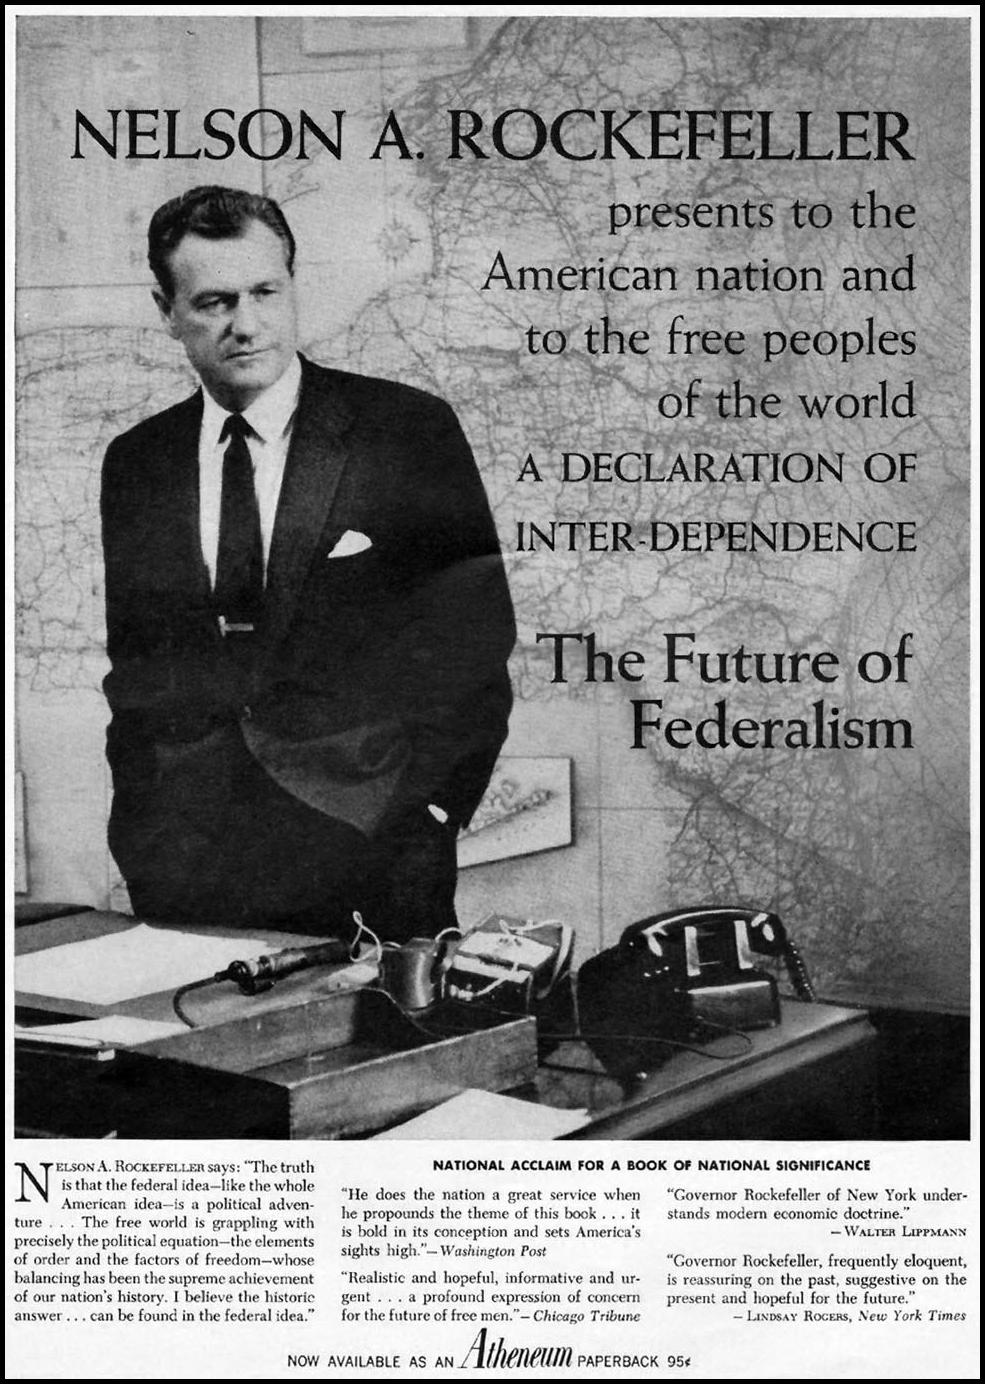 THE FUTURE OF FEDERALISM TIME 10/04/1963 p. 3